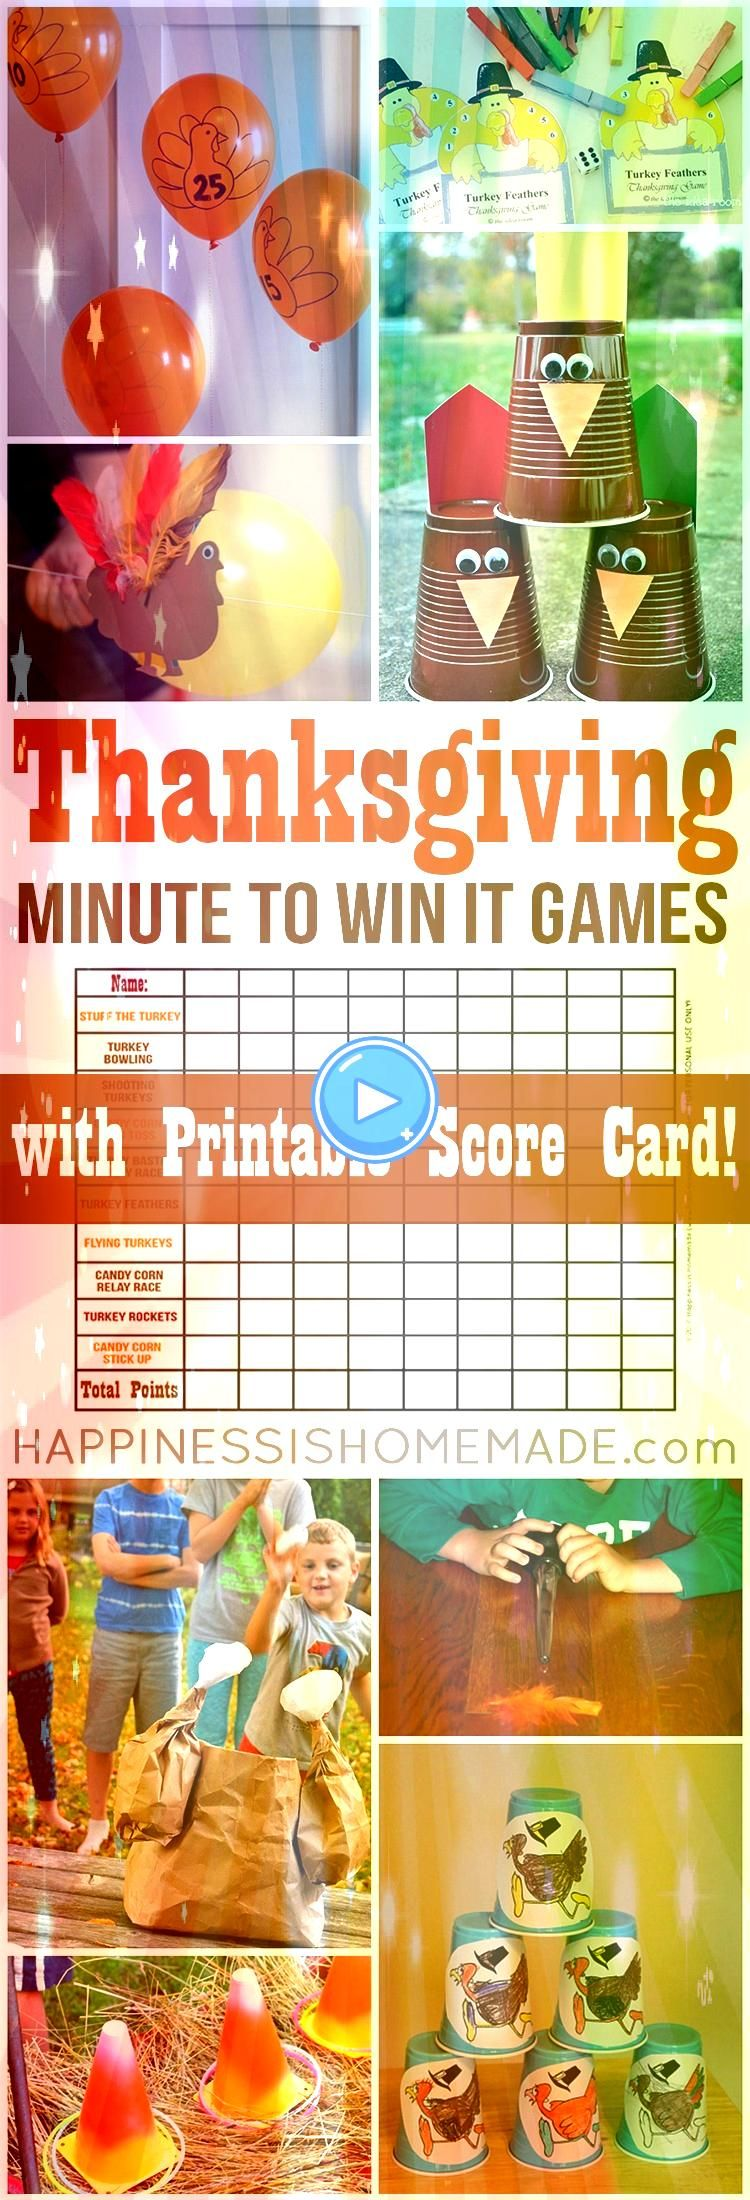 the best Thanksgiving dinner party ever with these fun Thanksgiving Minute  Host the best Thanksgiving dinner party ever with these fun Thanksgiving Minute   How fun is T...